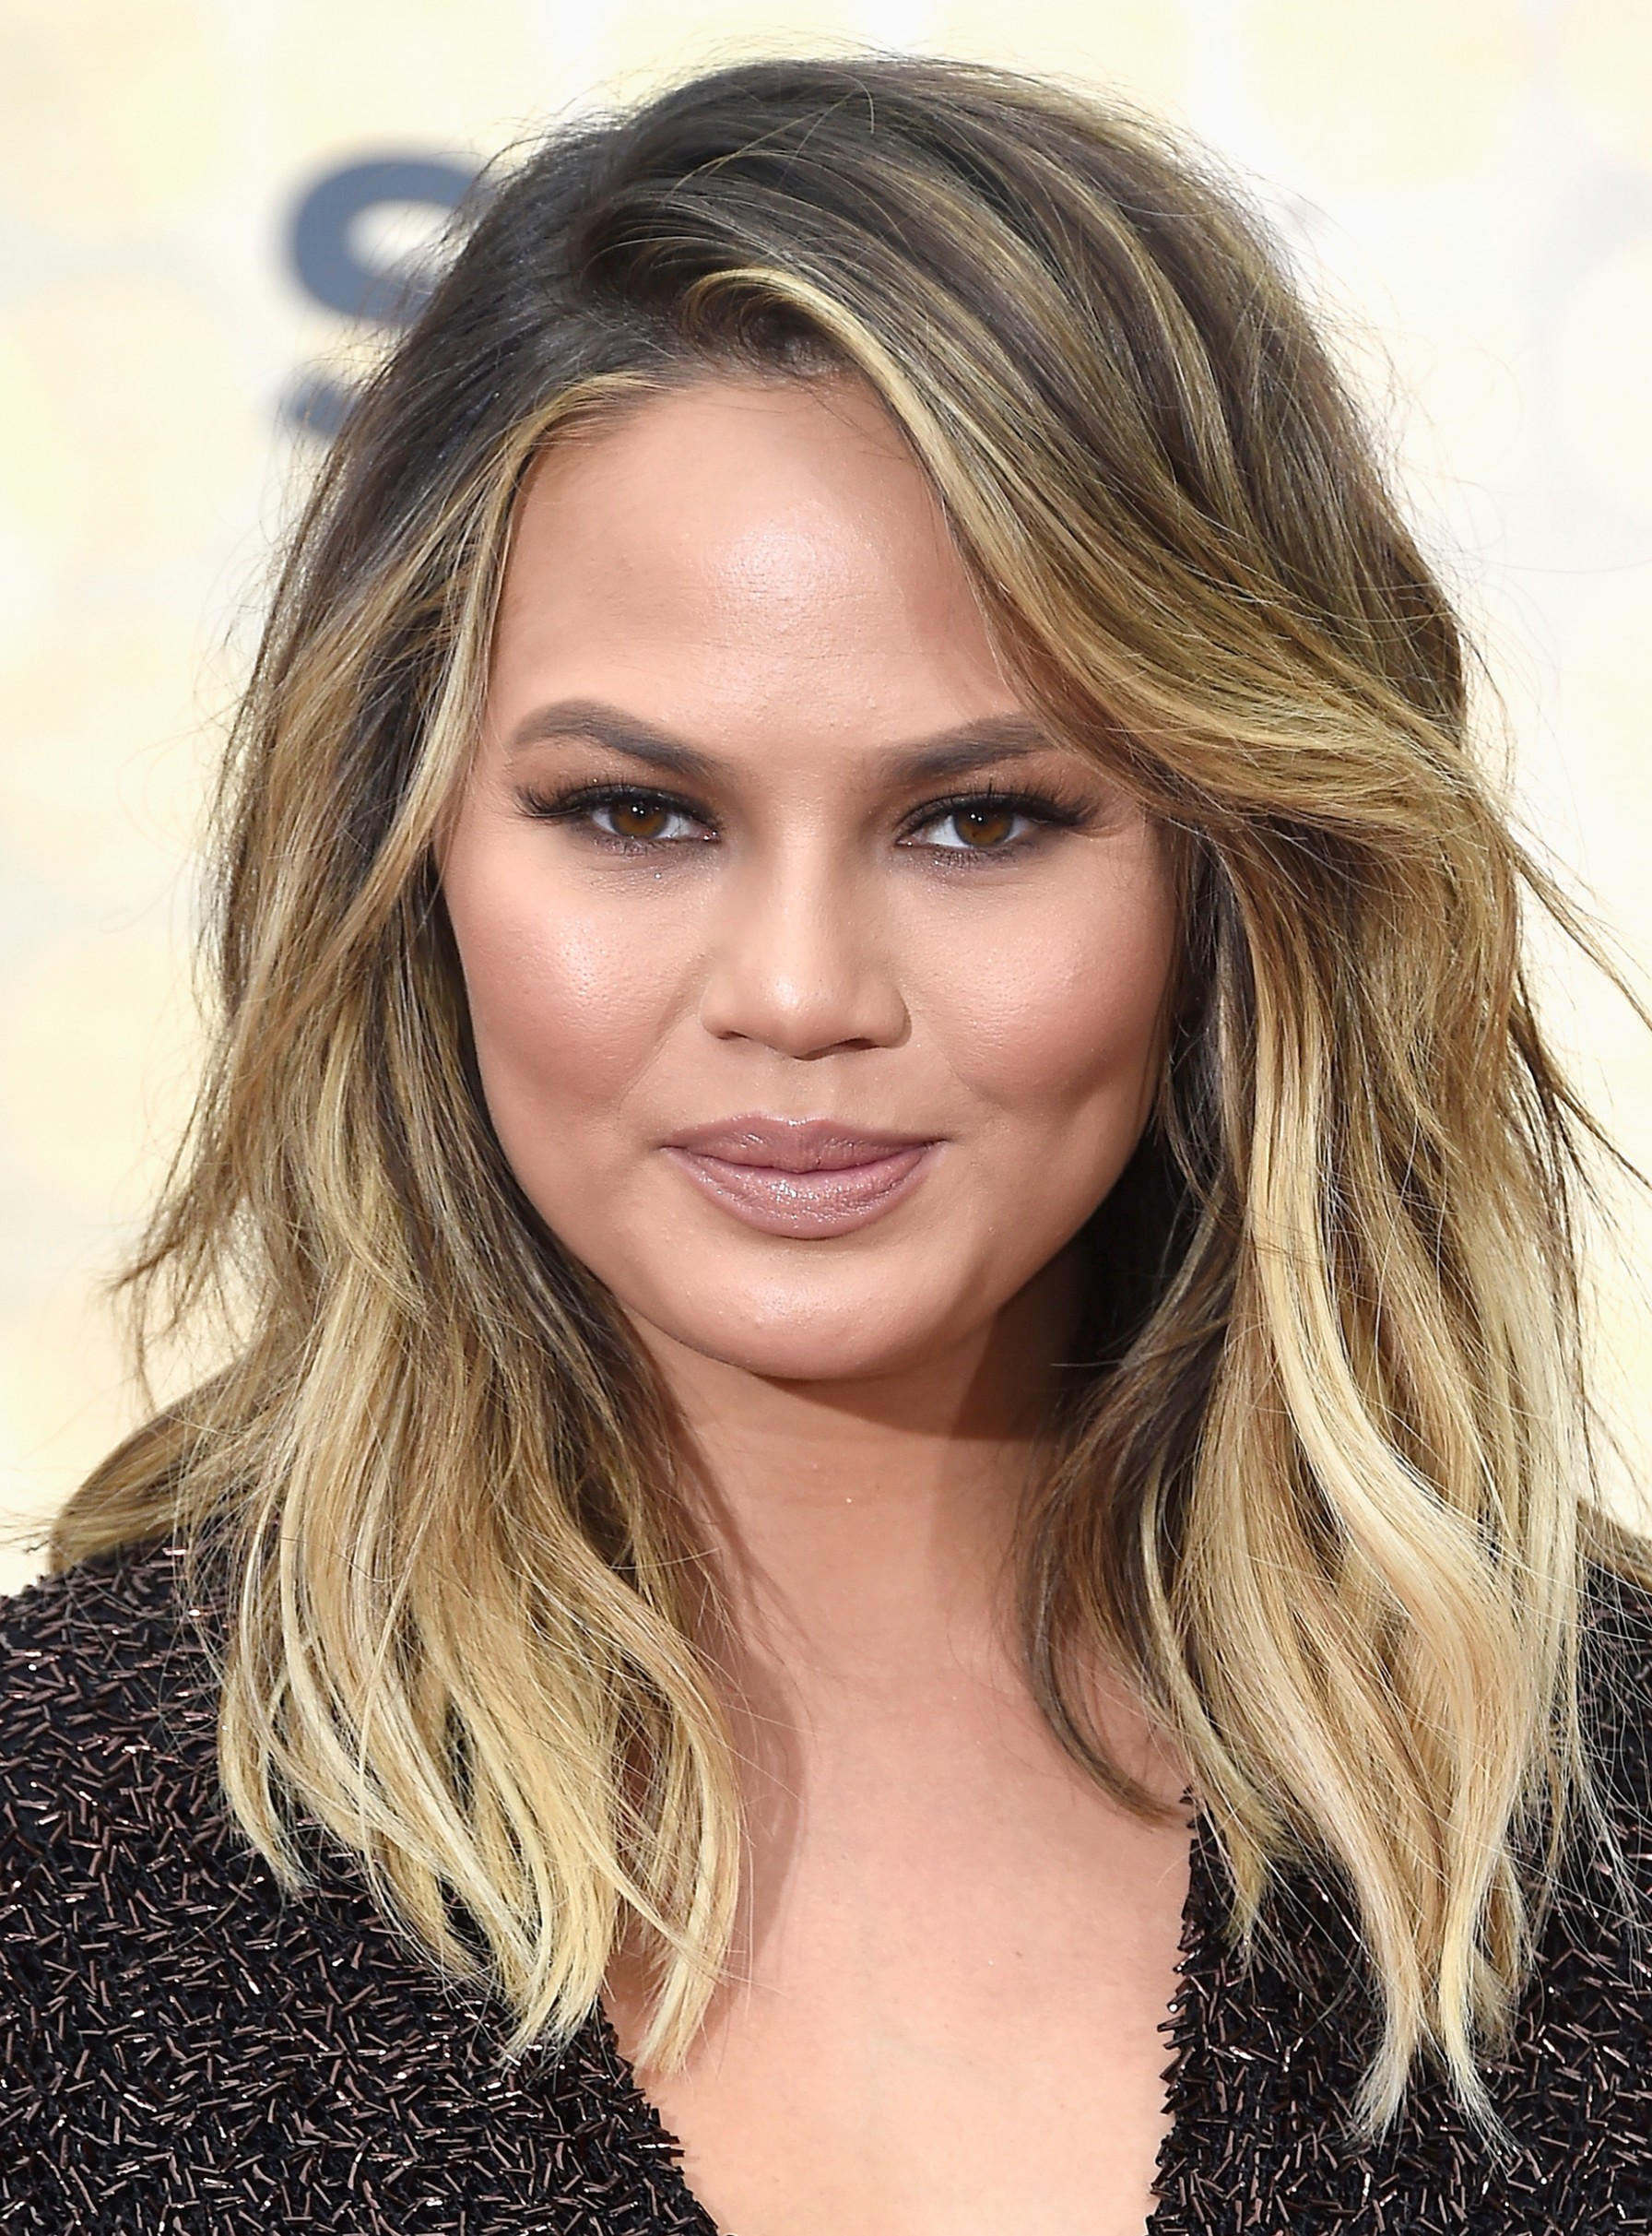 10 Best Hairstyles For Round Faces Best Haircut For Round Face Female